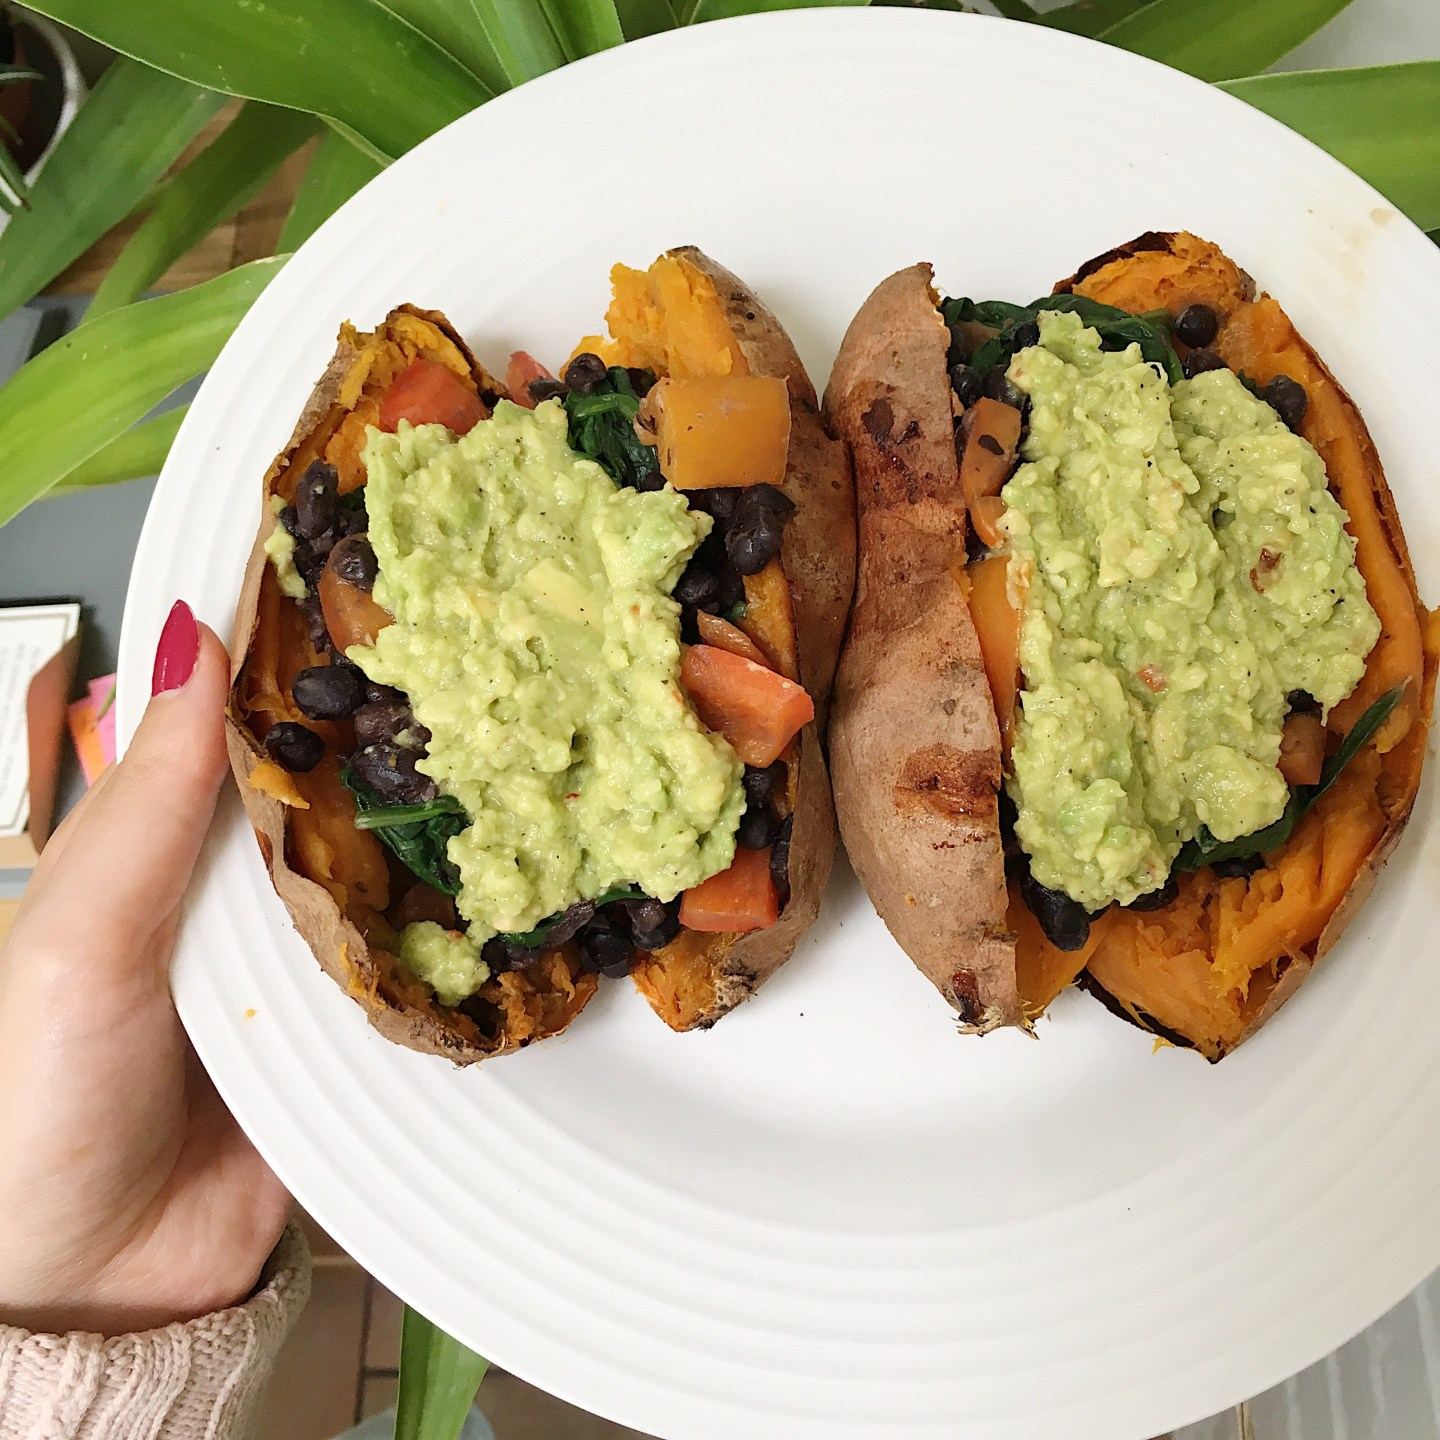 Recipe: Baked Sweet Potato with Avocado Mash and Black Beans